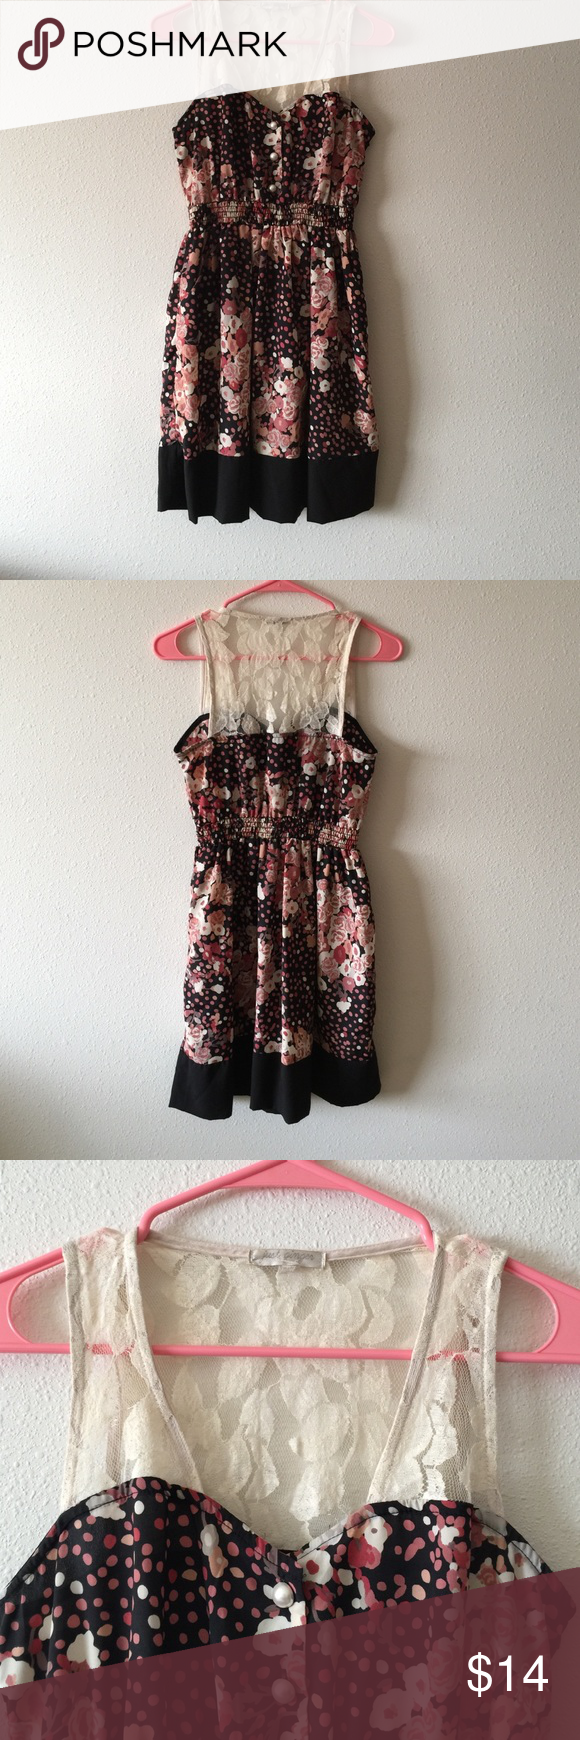 Just ginger dress Floral dress with lace top. Size small. No flaws Dresses Midi